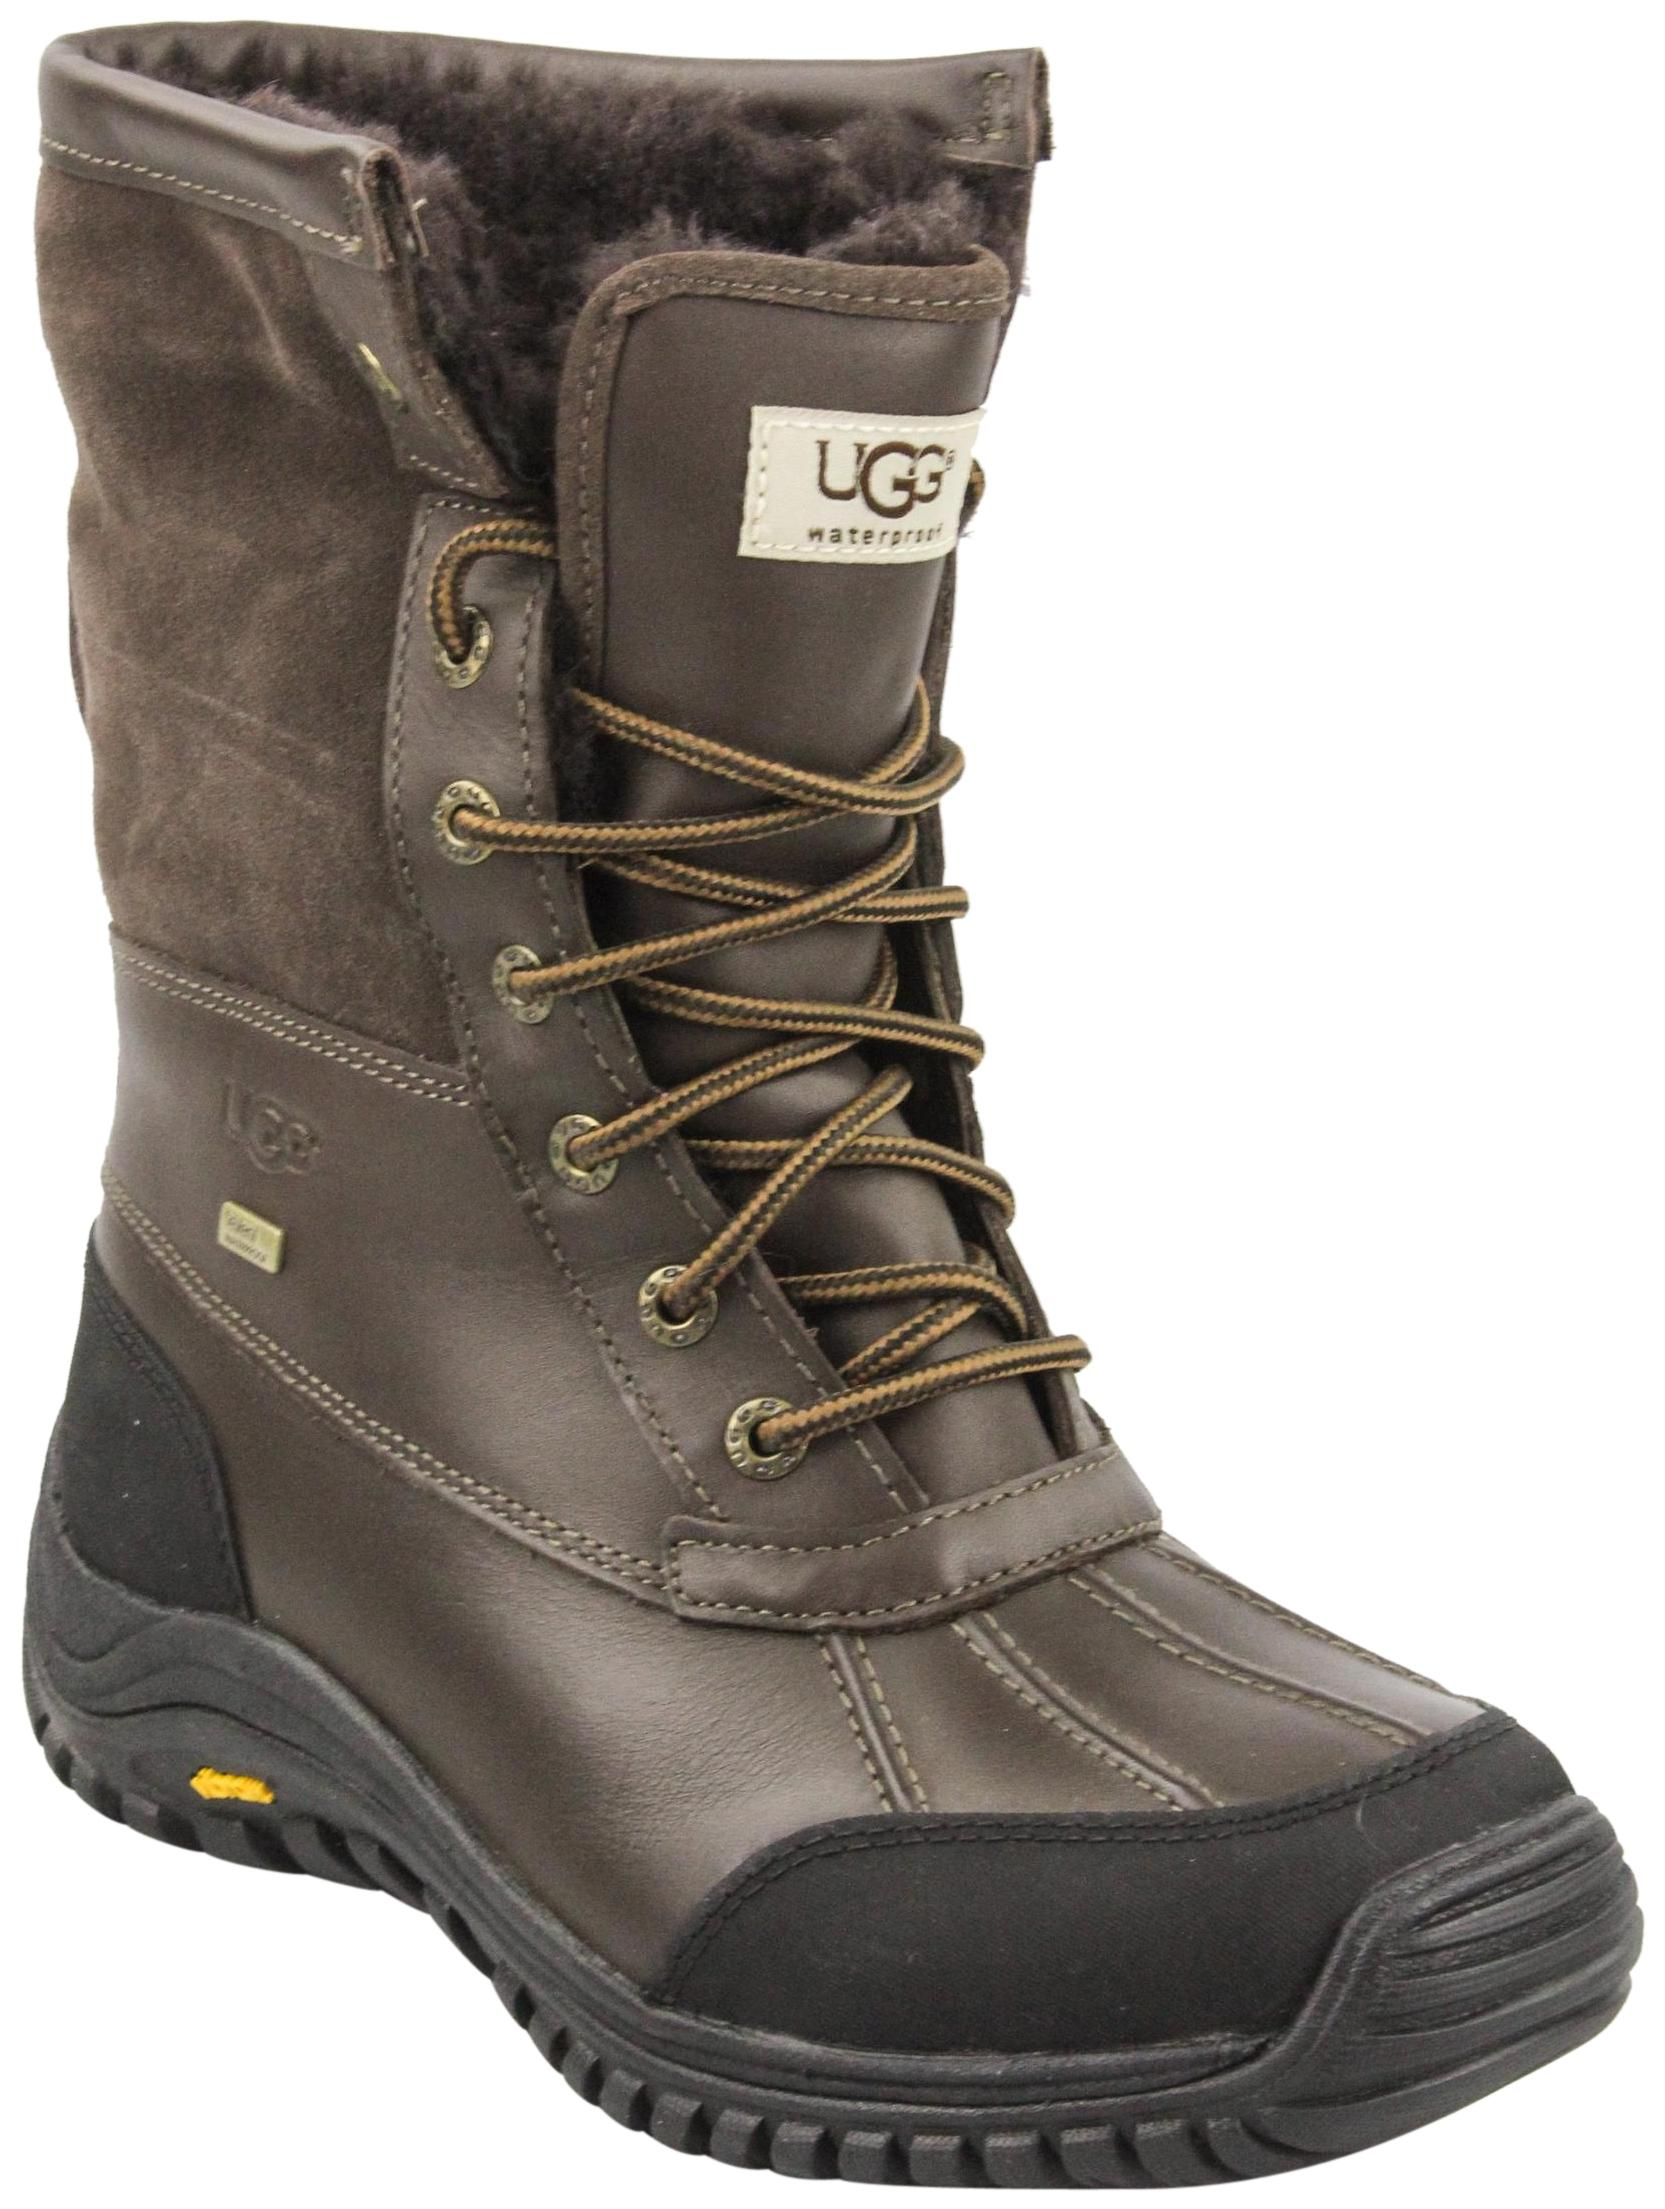 UGG Australia For Her 5446 Size 8 Obsidian Boots